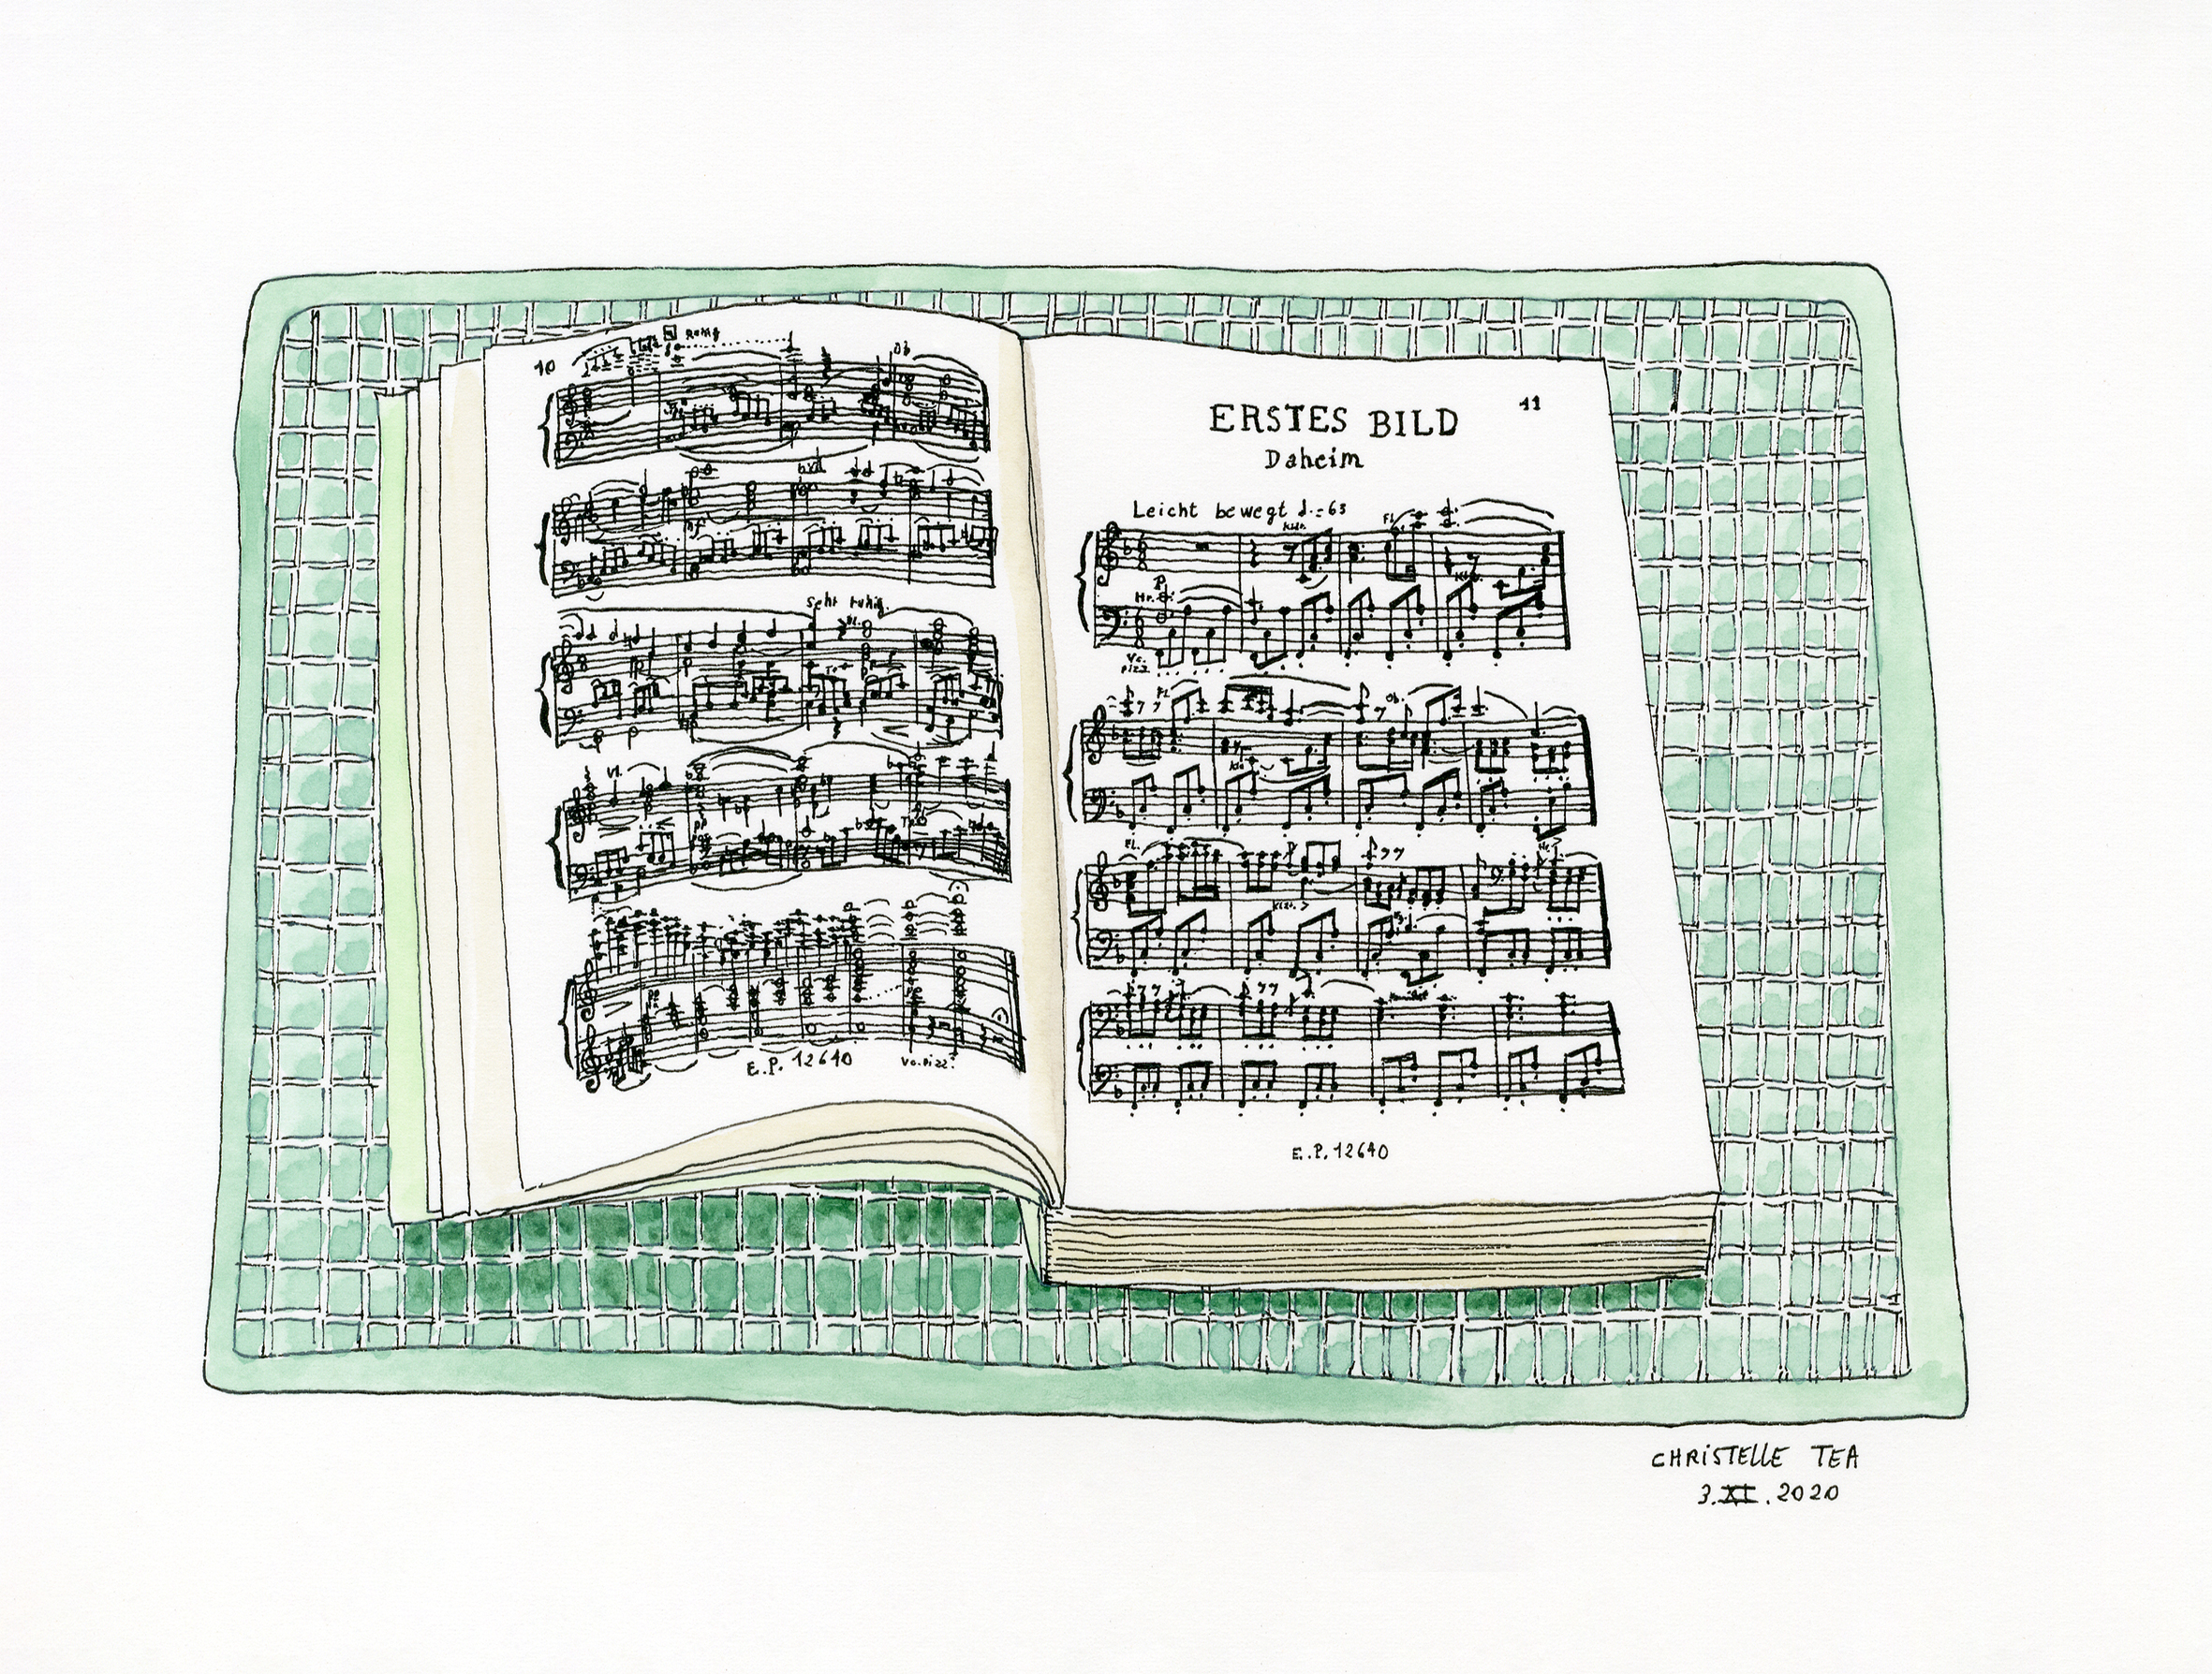 Partition Hänsel und Gretel d'Humperdinck, Edition Peters N°9249, Klavierauszug, vocal score, 3.XI.2020. Encre de Chine et aquarelle sur papier, 18 x 24 cm.